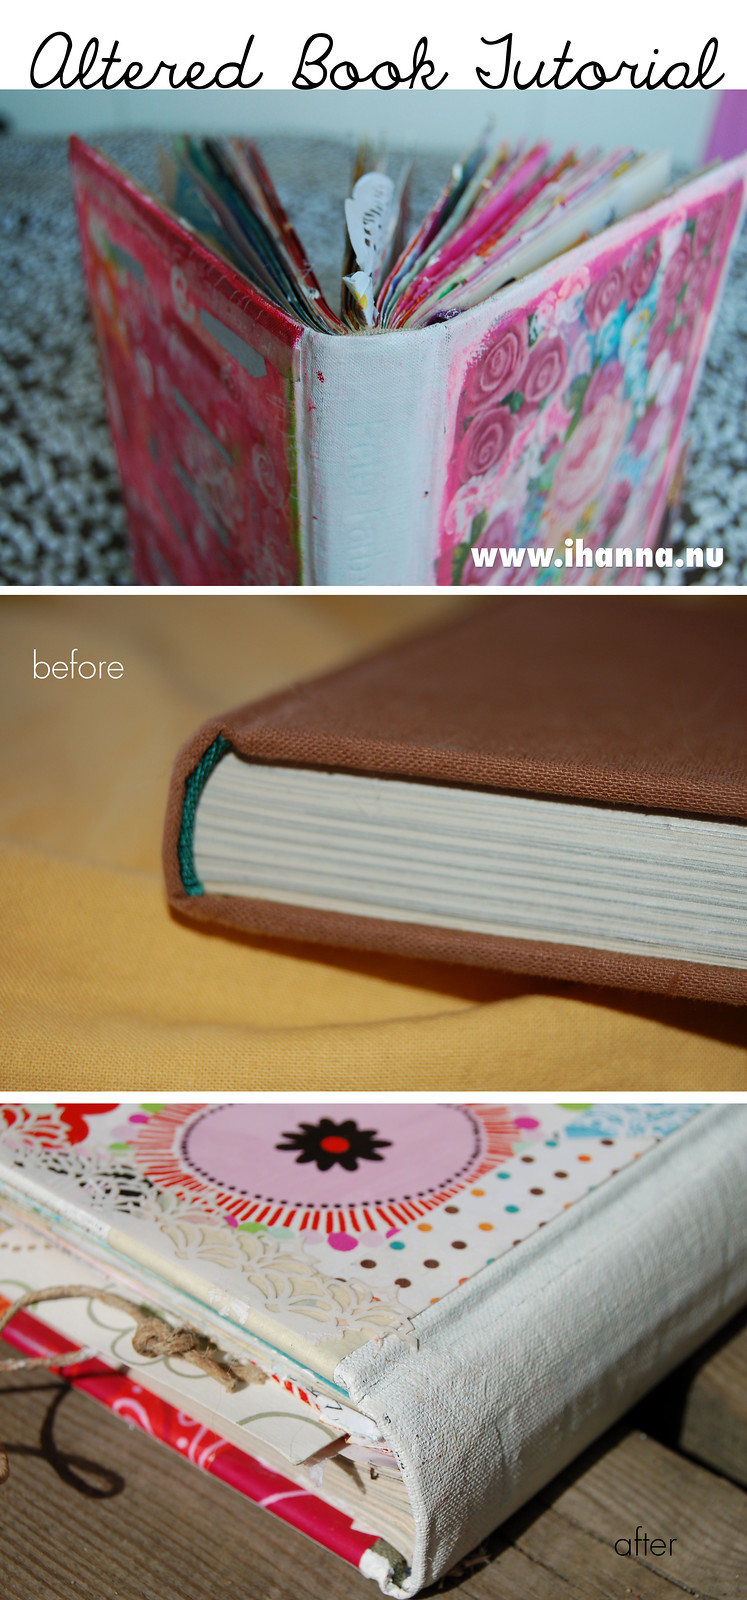 Altered Book Tutorial by @ihanna #alteredbook #artjournaling